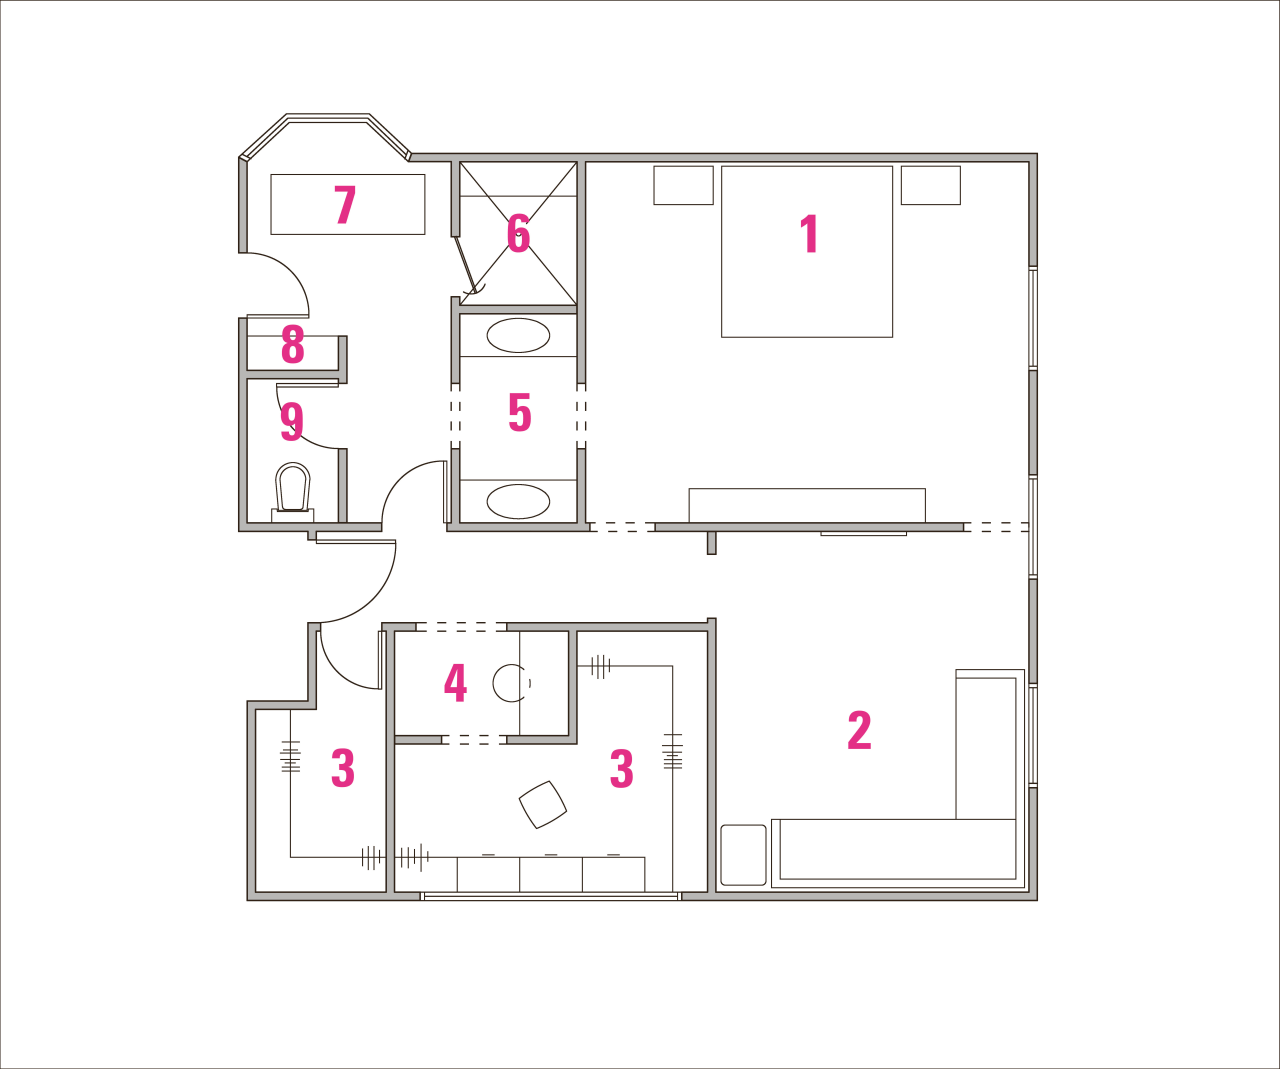 Legend to plans of remodeled bathroom by designer area, design, drawing, floor plan, line, product, product design, square, text, white